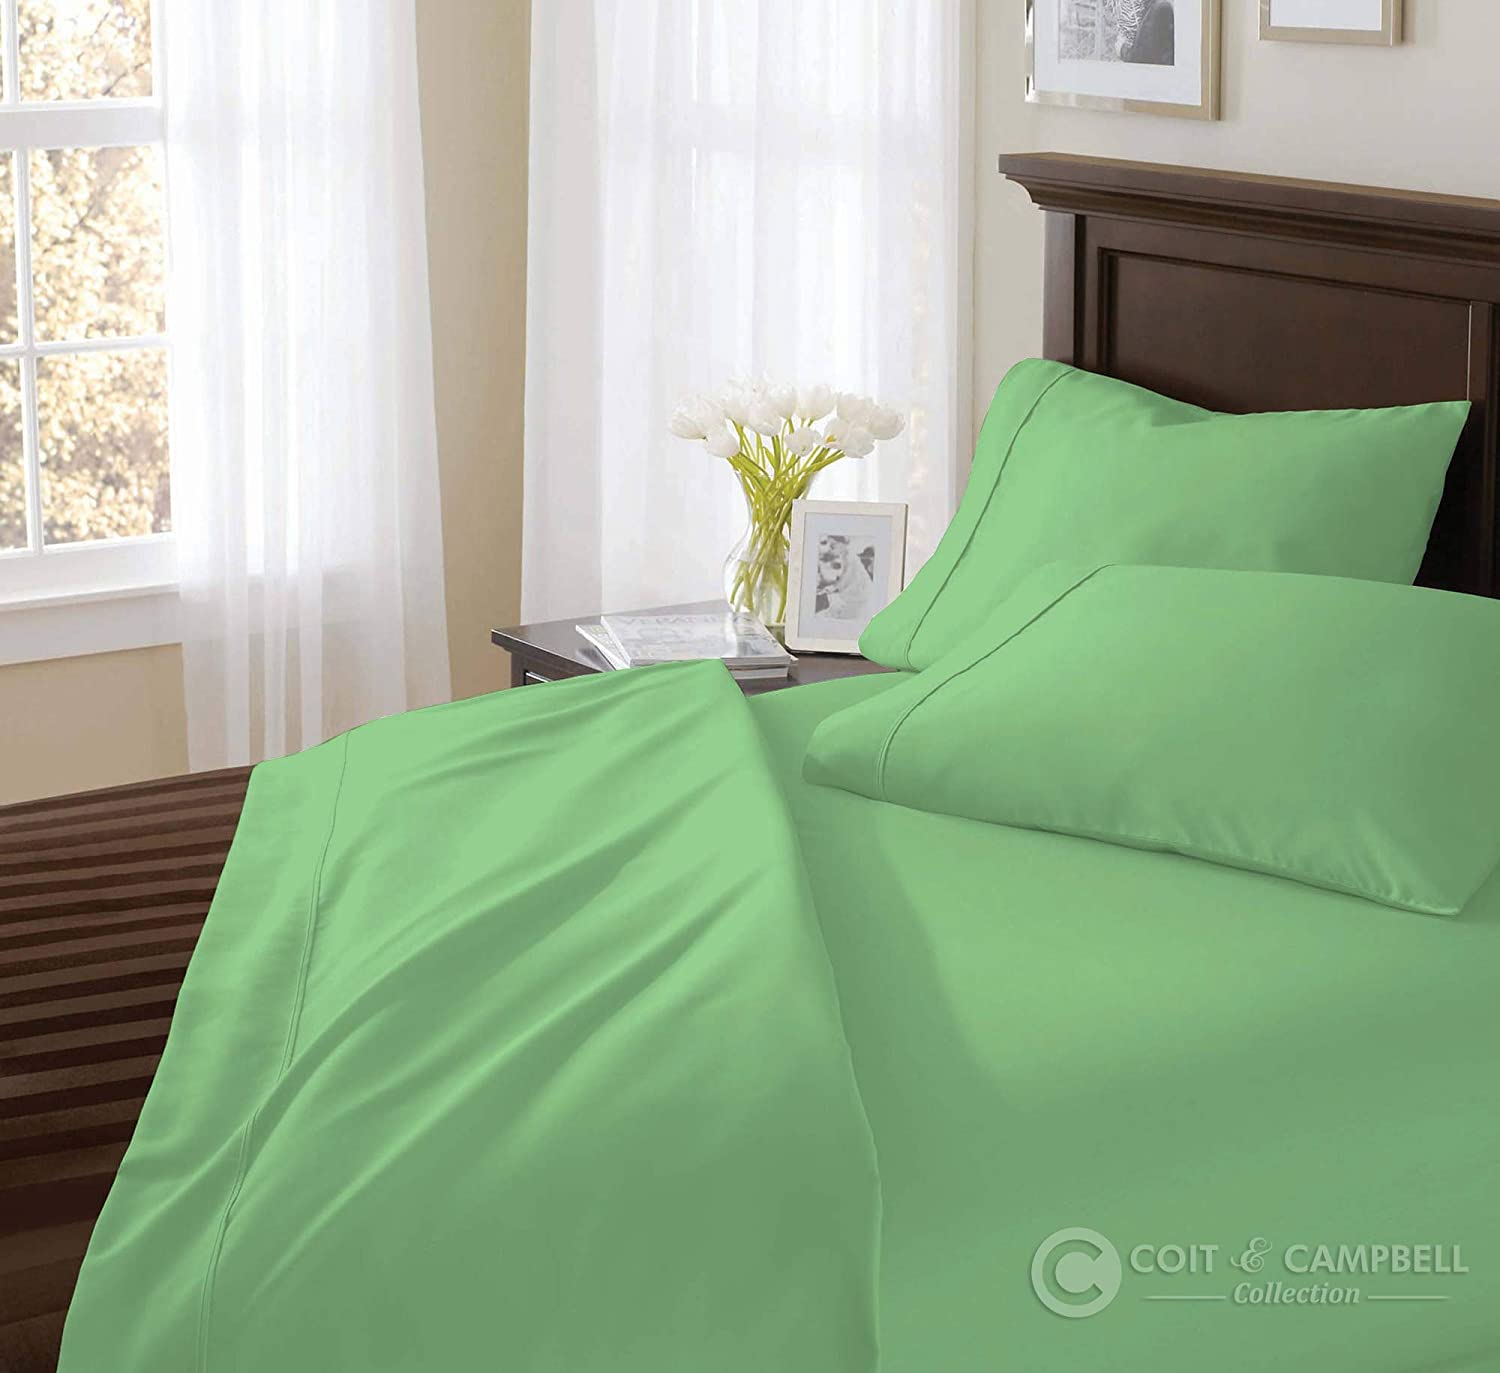 500 Thread Count 100% Cotton Sheet Set (Sage Green, Full) 4 Pieces Sheet Set. Long Staple Combed Pure Natural Cotton Bedsheet, Soft & Silky Sateen Weave